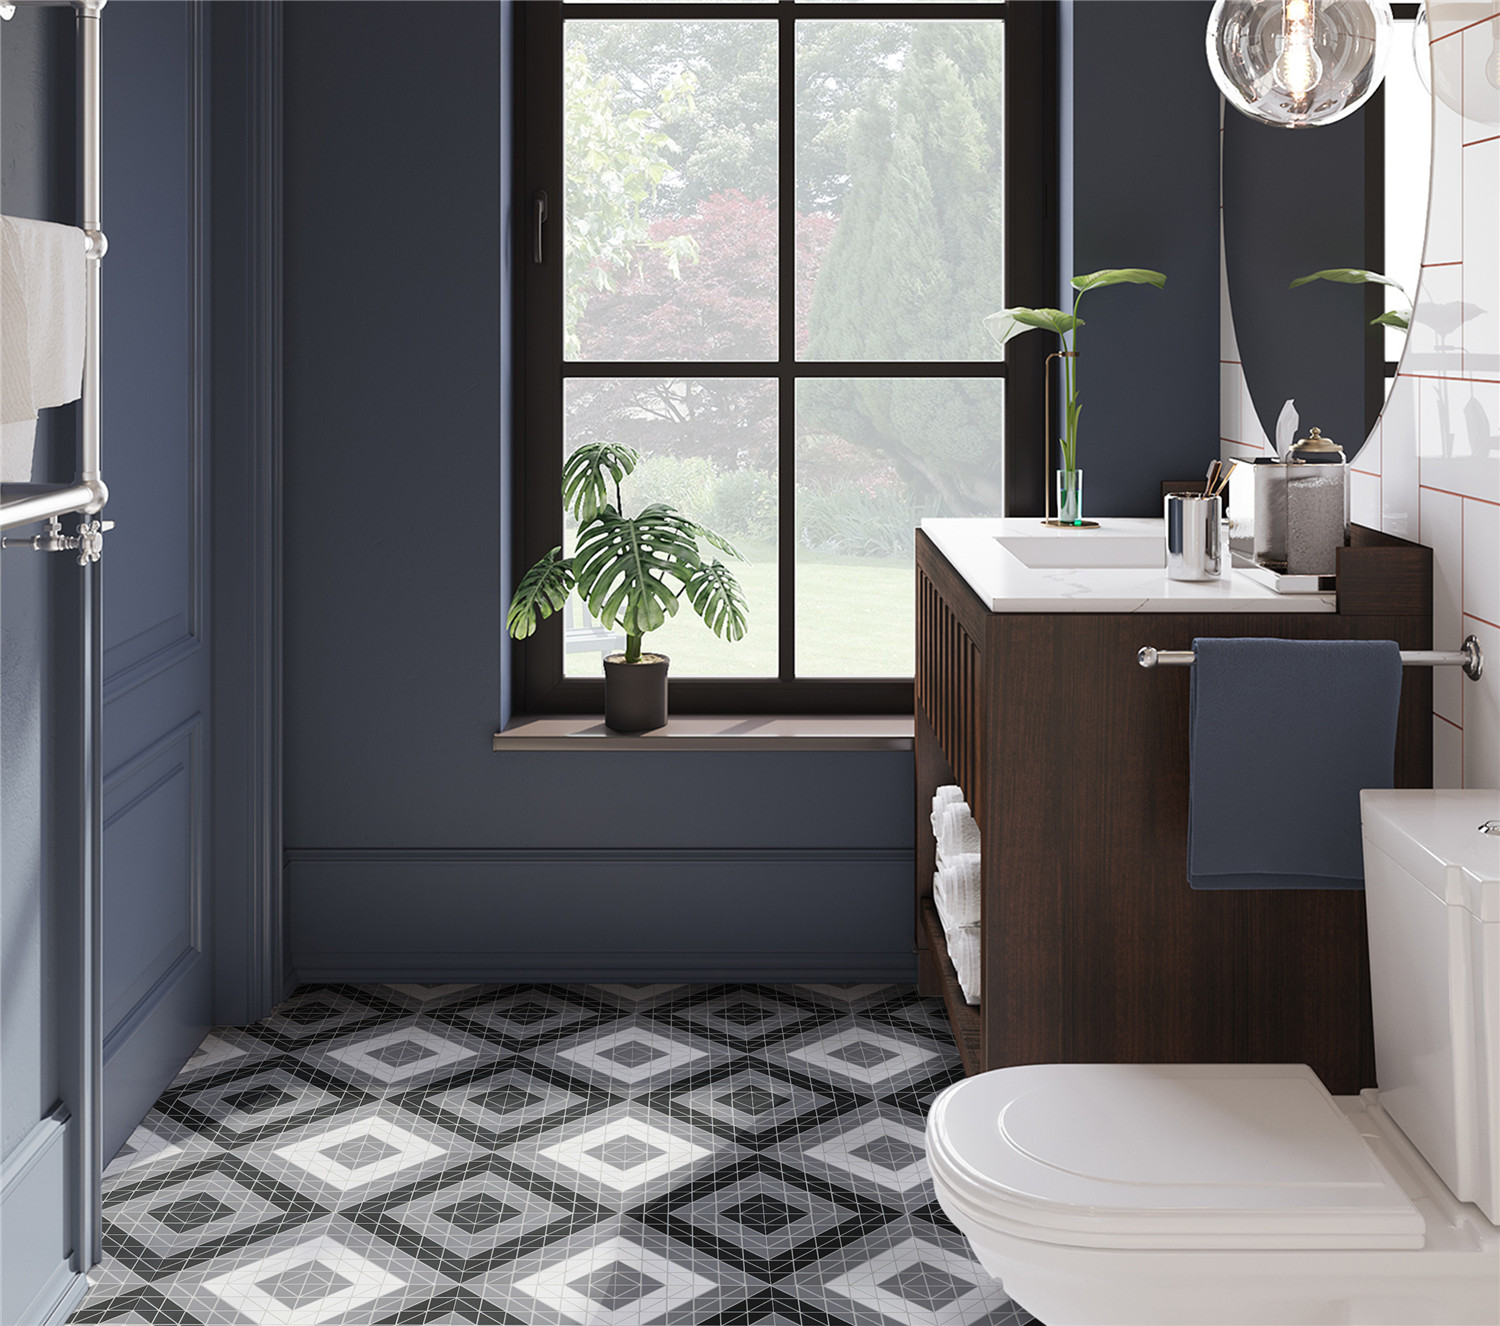 Bathrooms ant tile triangle tiles mosiacs floors for Bathroom design 2019